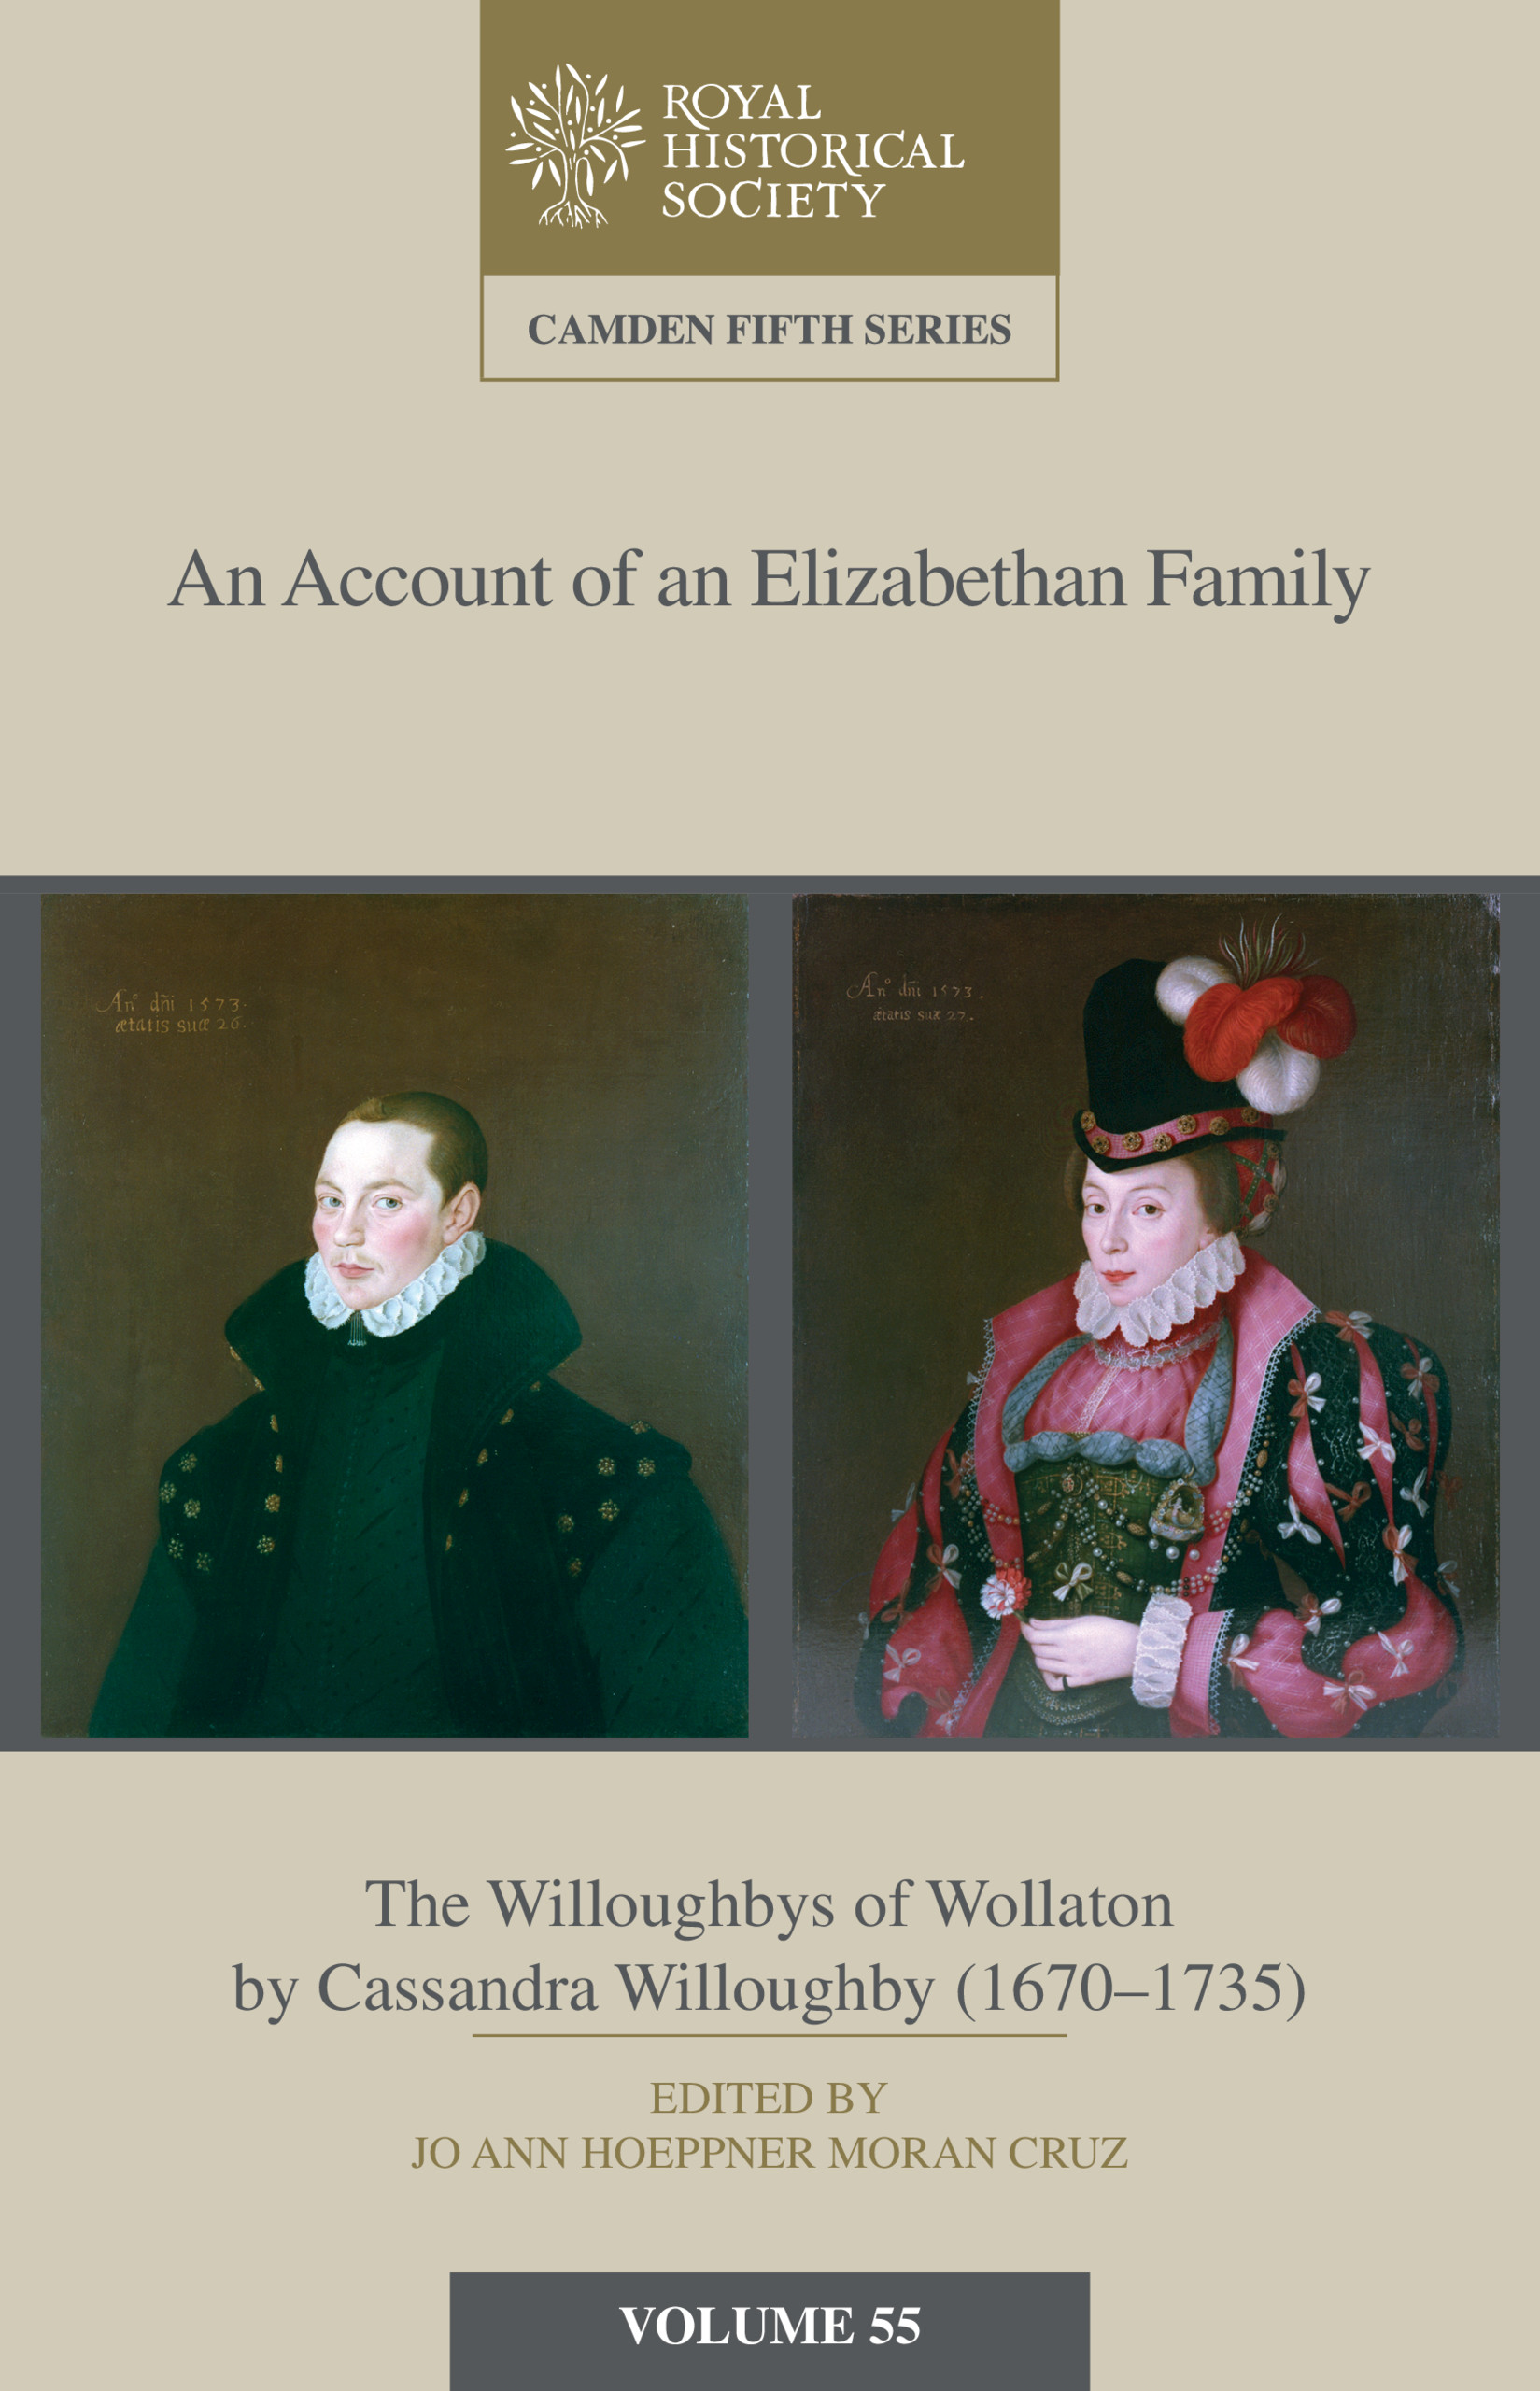 New Camden Volume on Elizabethan Family